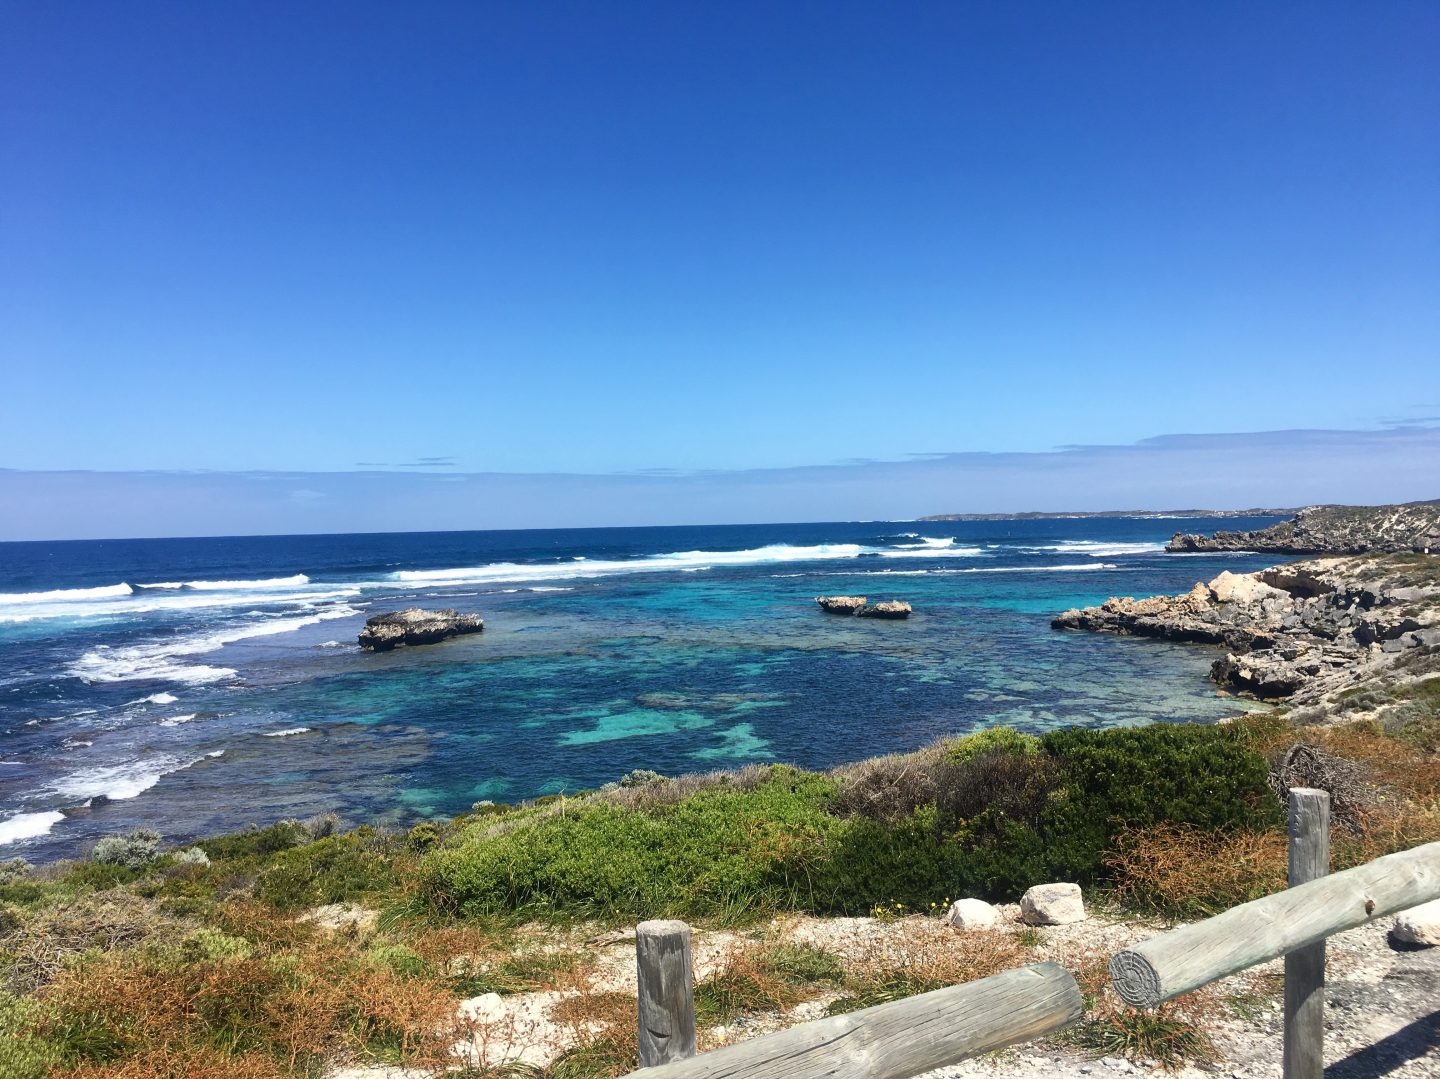 Day tripping on Rottnest Island